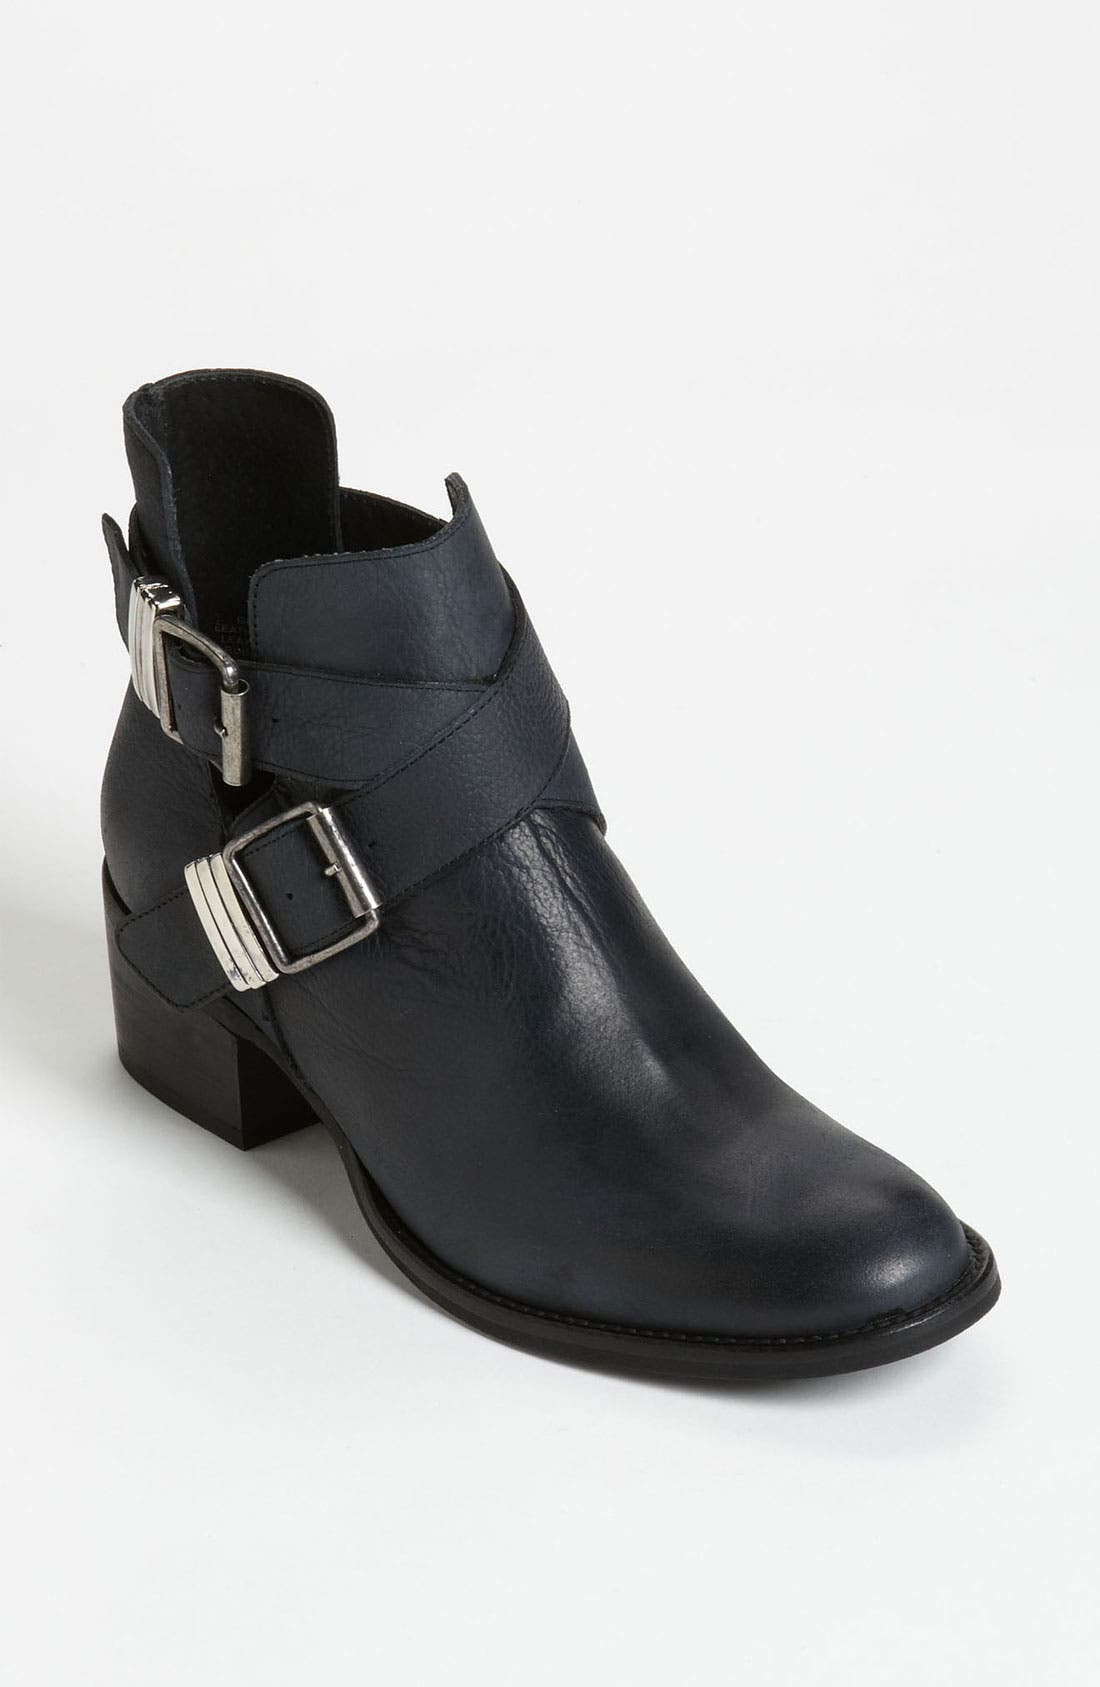 Alternate Image 1 Selected - Steve Madden 'Grizzz' Boot